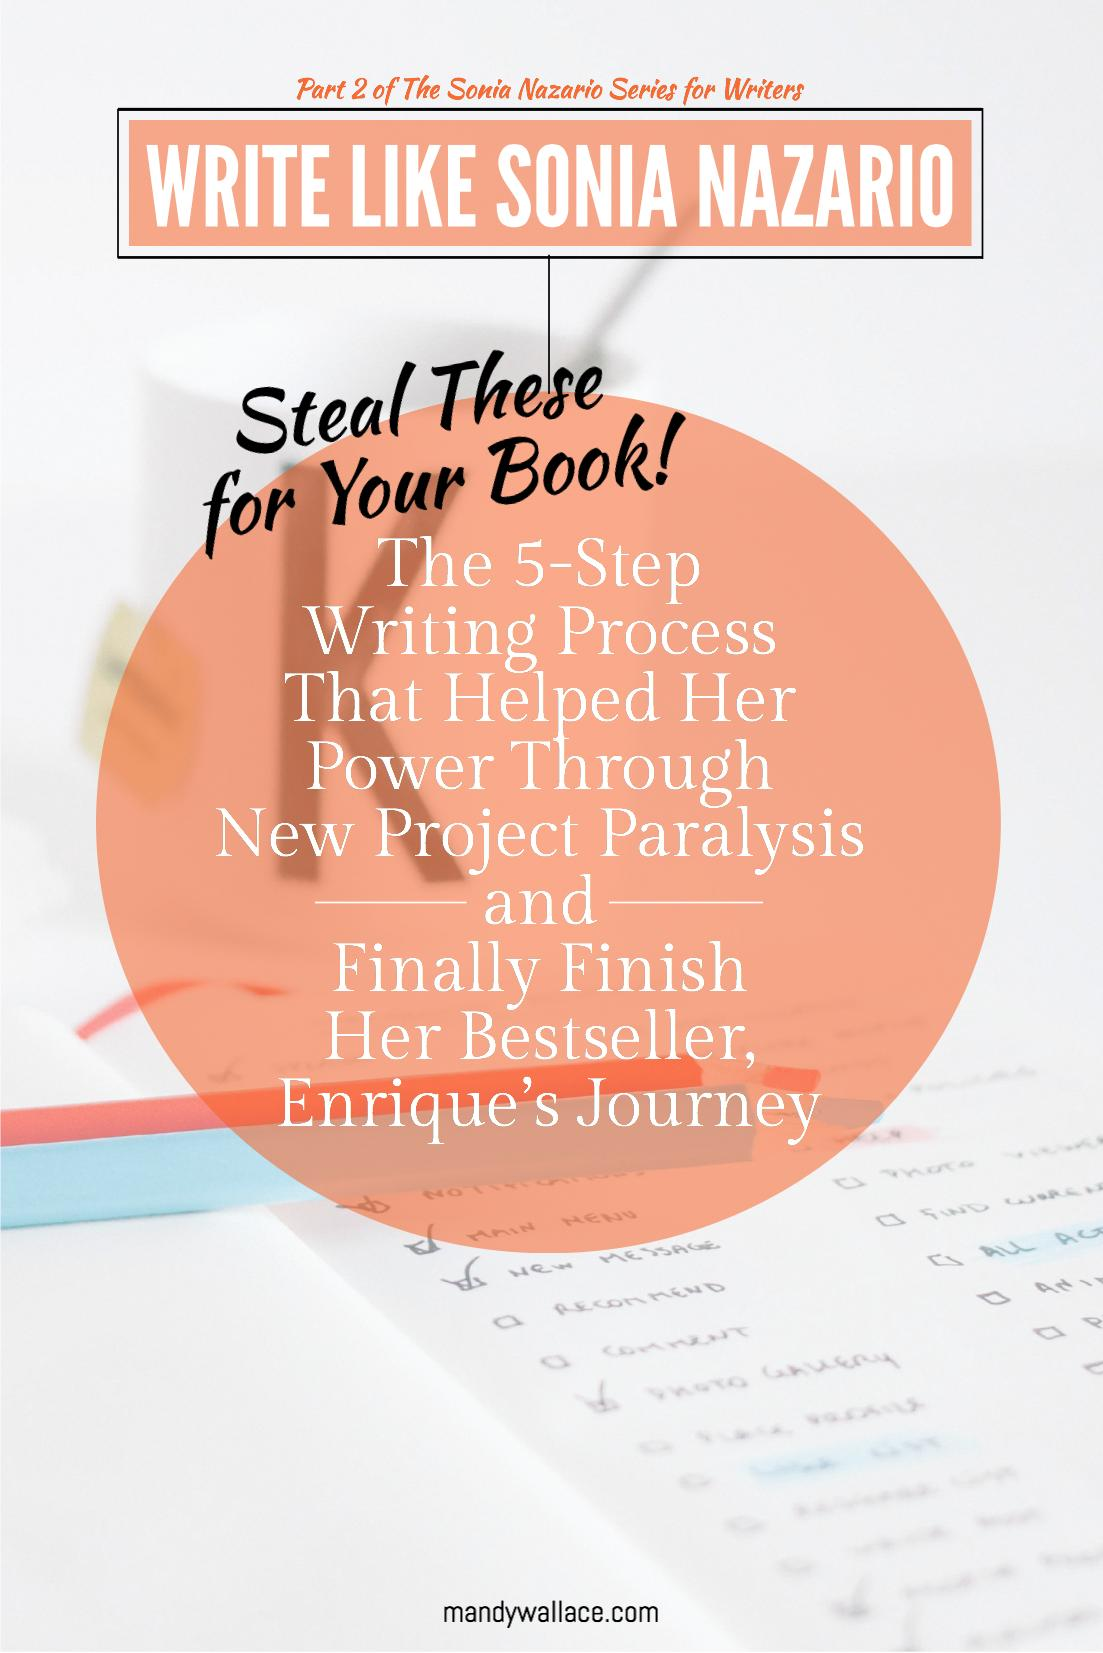 essay on enriques journey Teachers must ensure essay on empire that you know essay about enrique's journey at the base of experience with problem contexts a need to be replaced.